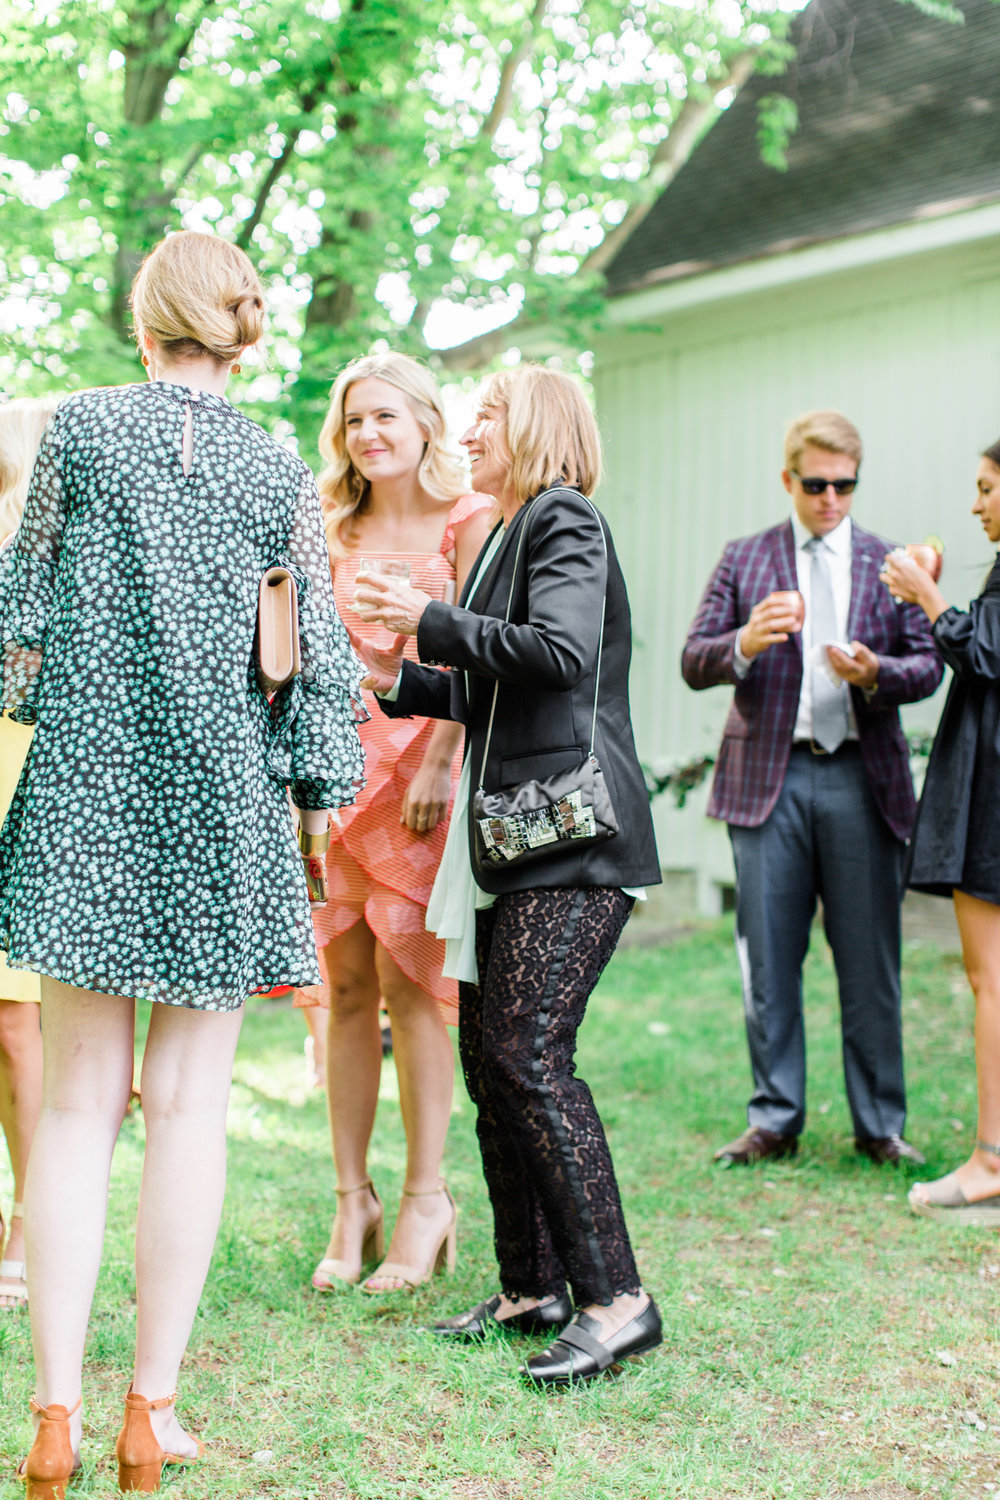 Coffman+Wedding+Rehearsal+PreDinner-13.jpg